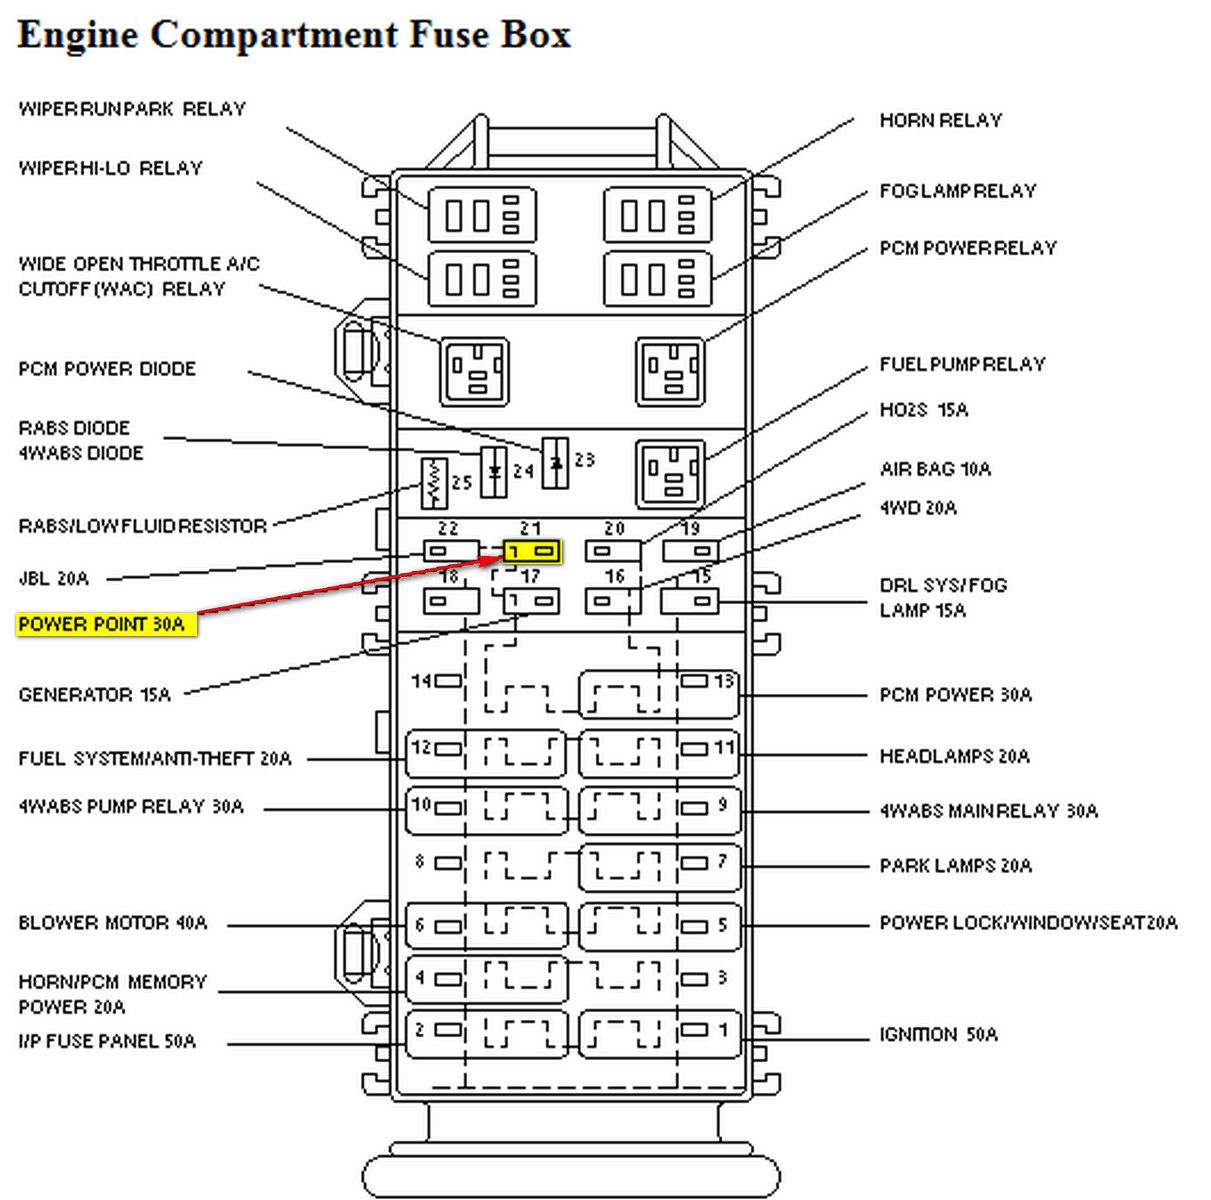 medium resolution of wrg 4838 2002 ford f 150 fx4 fuse panel diagram1997 ford ranger fuse box diagram